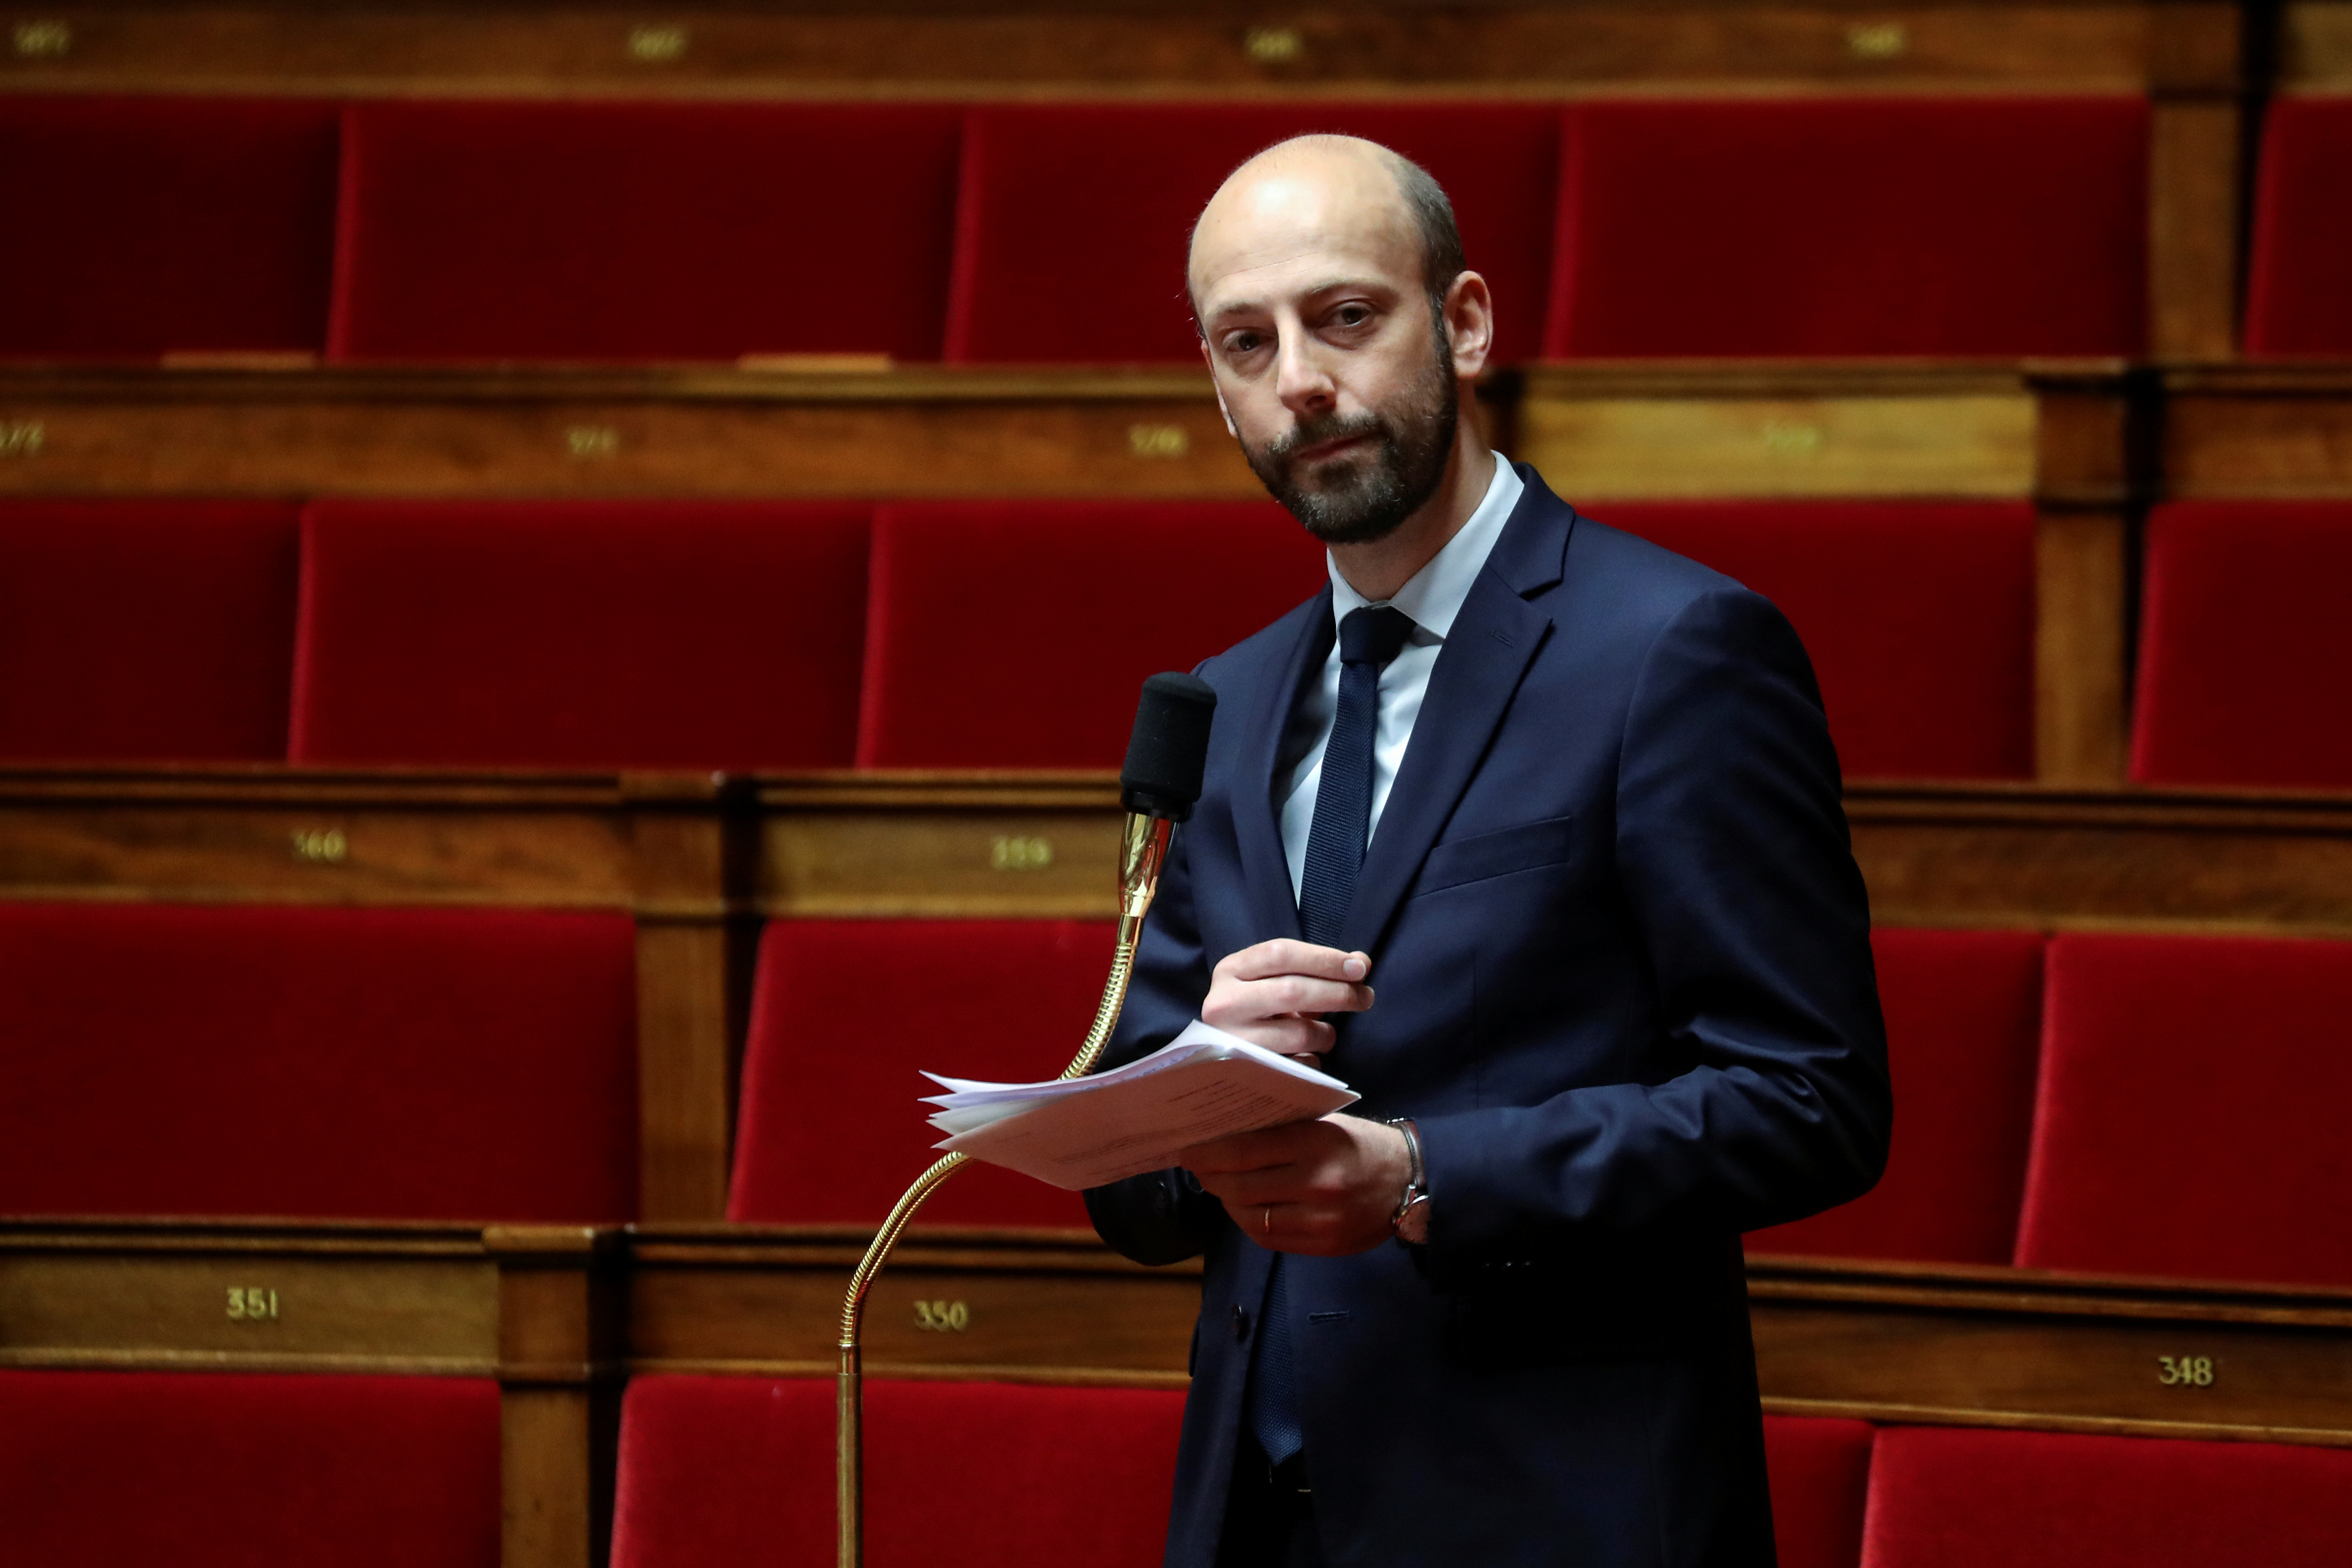 General delegate of La Republique En Marche (LREM) centre-right ruling party Stanislas Guerini takes part in a debate about the state of health emergency bill at the National Assembly in Paris, France March 21, 2020. Ludovic Marin/Pool via REUTERS